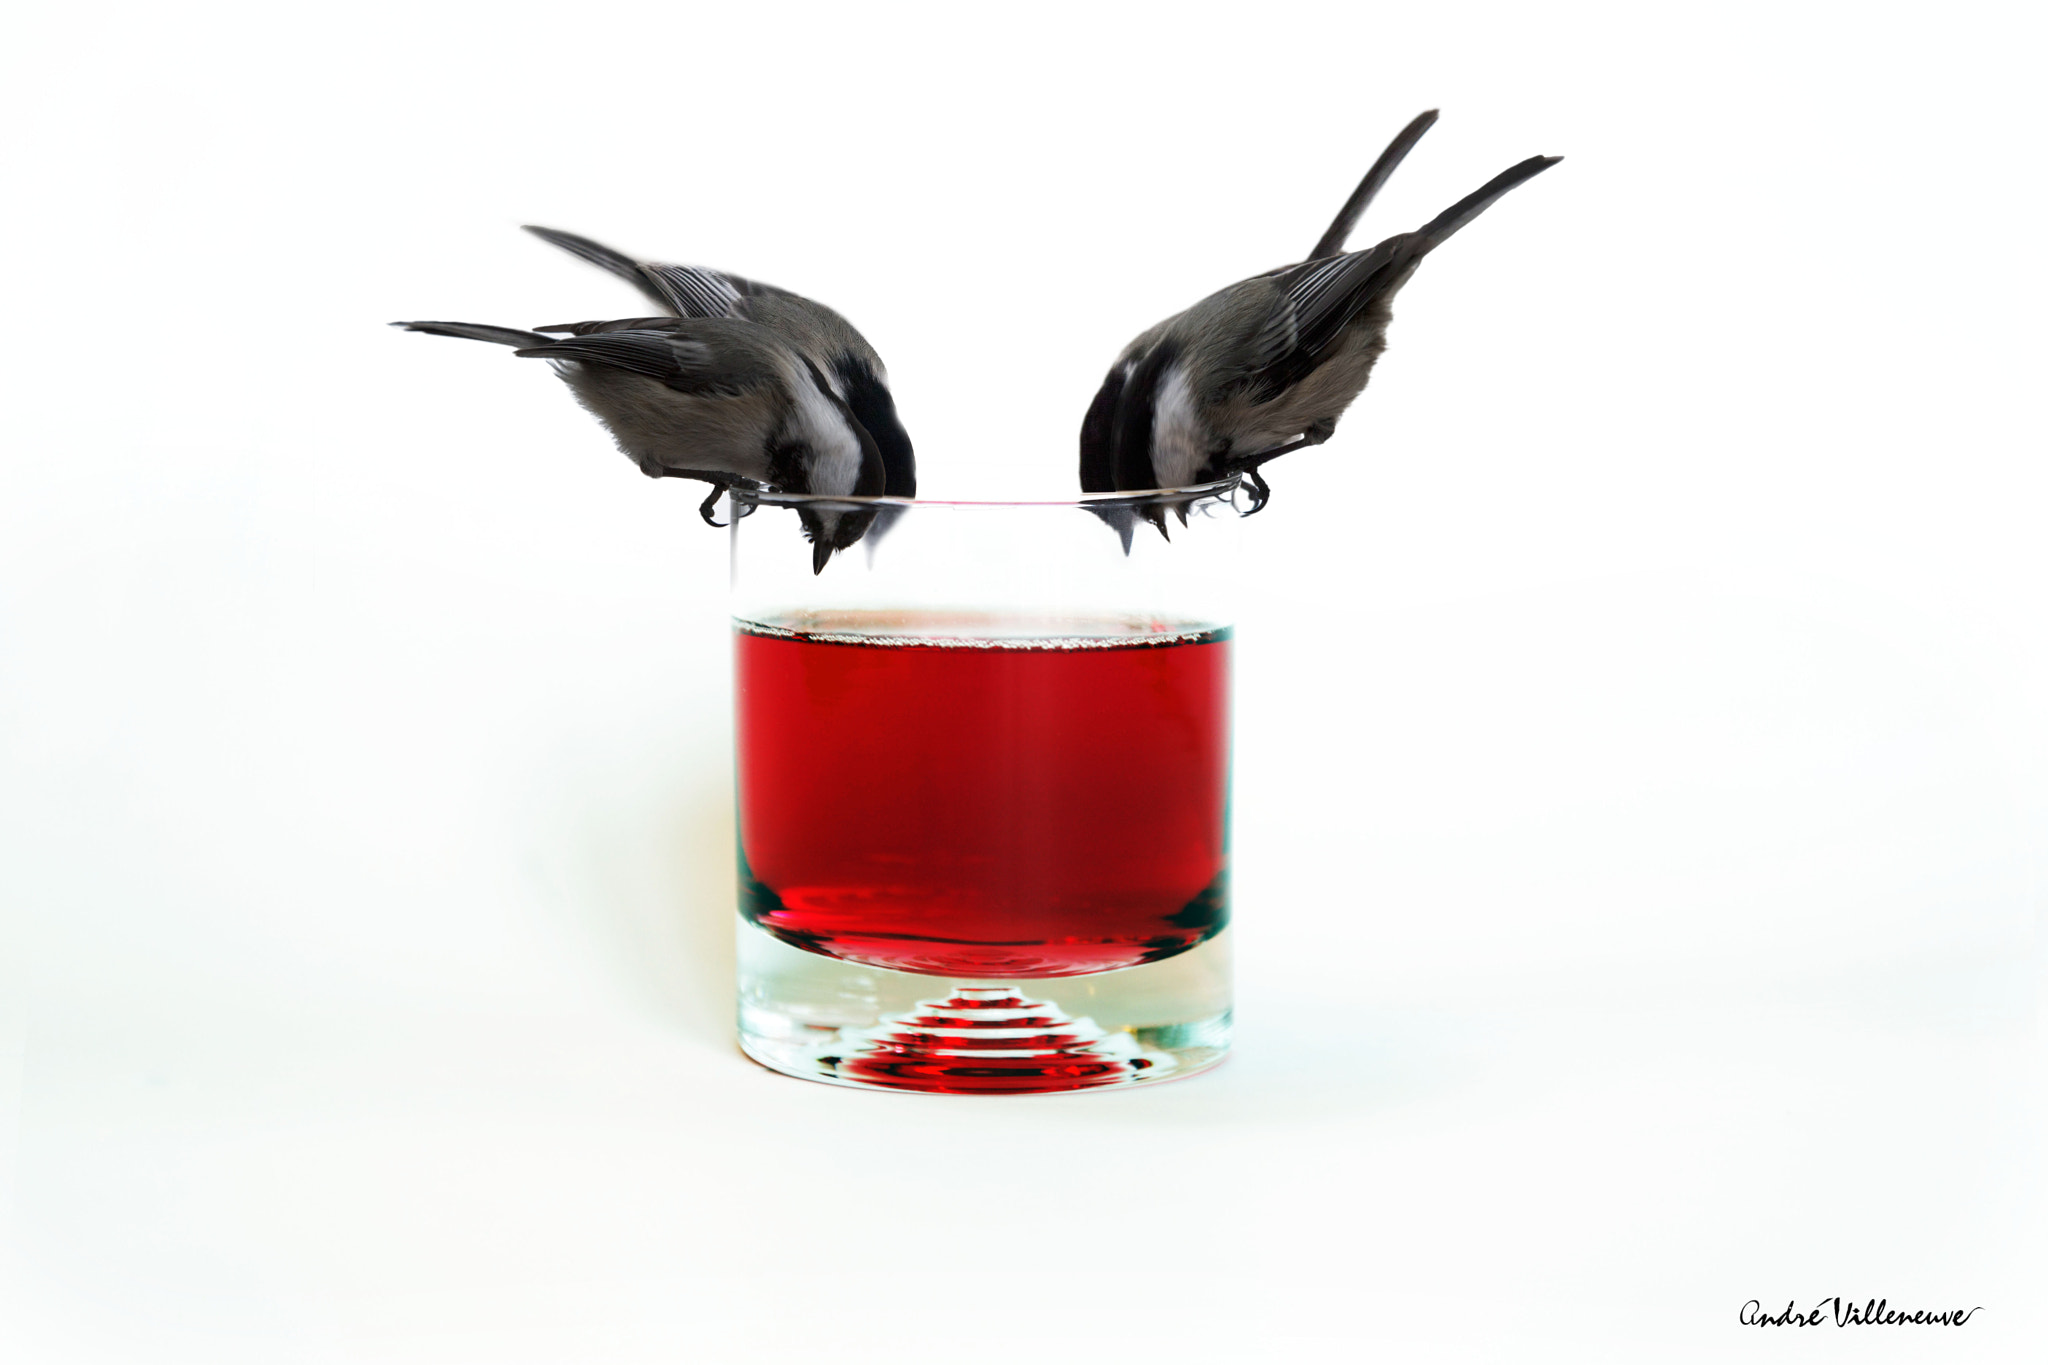 Photograph Cocktail by Andre Villeneuve on 500px